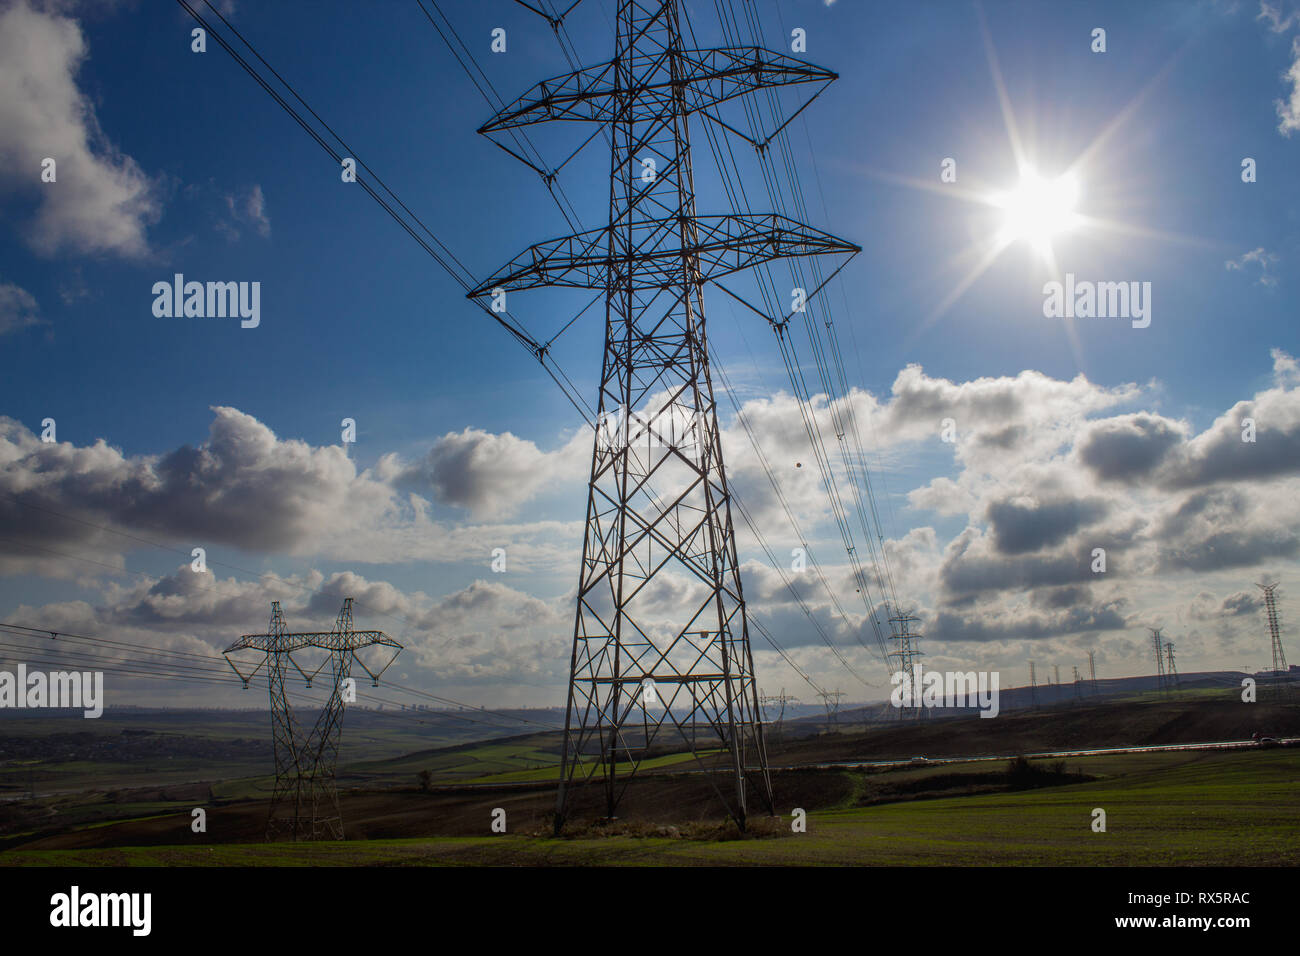 High voltage electric energy transmission line - Stock Image